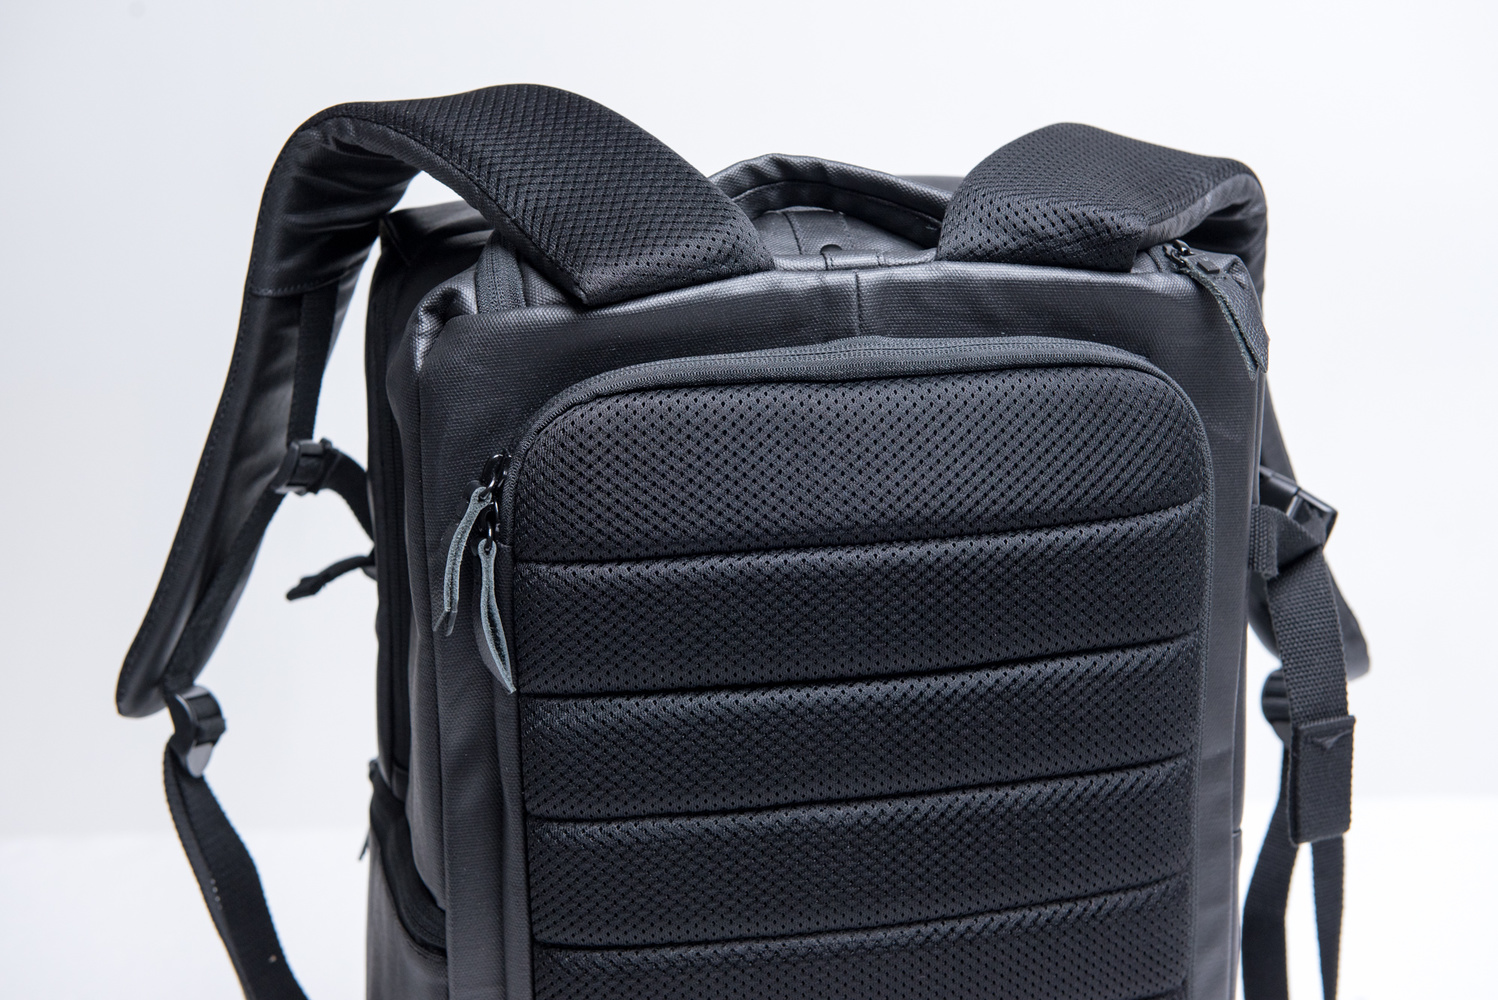 Camera Dslr Camera Bags Review fstoppers reviews hex dslr sling and backpack camera bags the sling